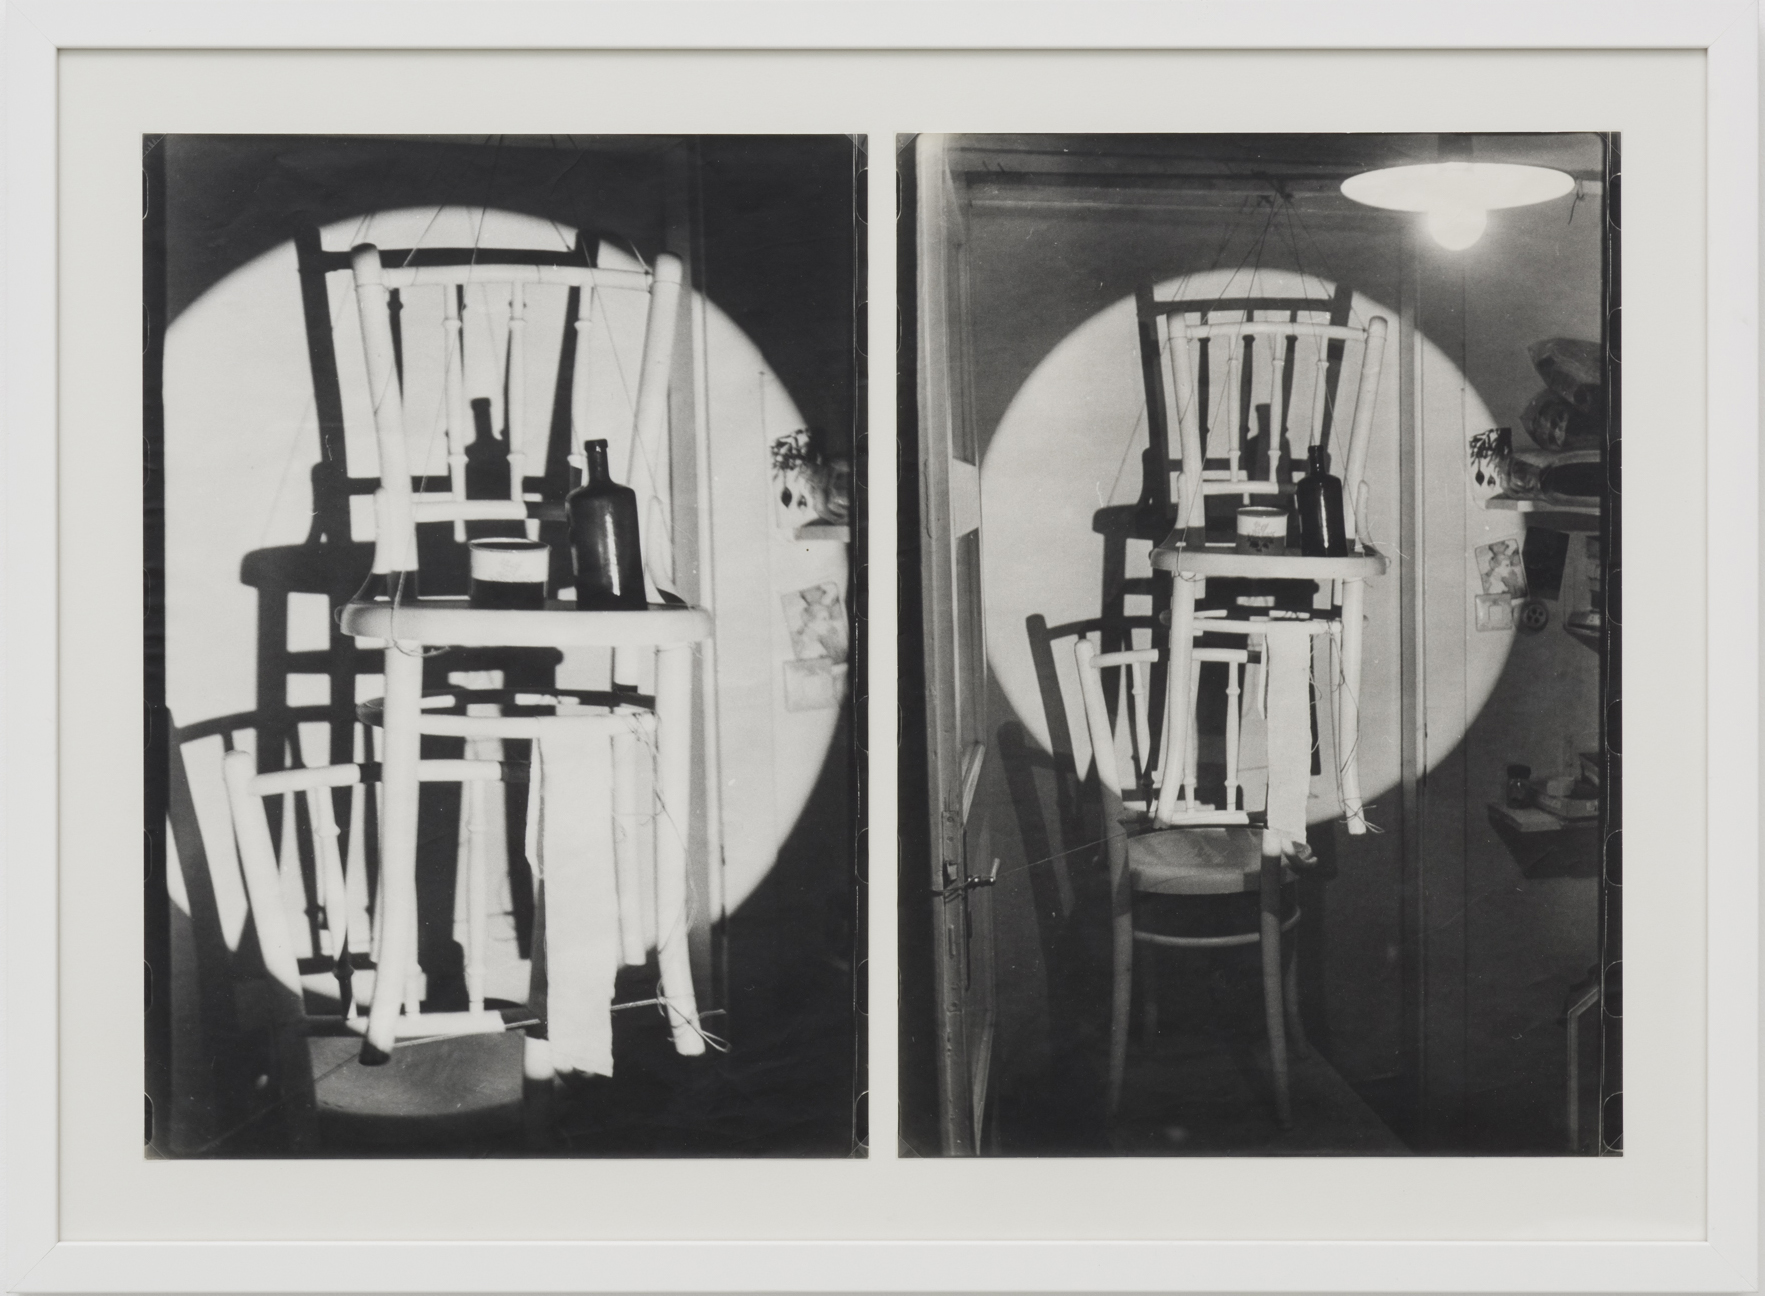 Ferenc Ficzek, Untitled, (Chair hanging) No. 1-2, 1974, series of 2 silver gelatin prints on Dokubrom paper, 52,5 x 71 cm. Photo: Marcus Schneider